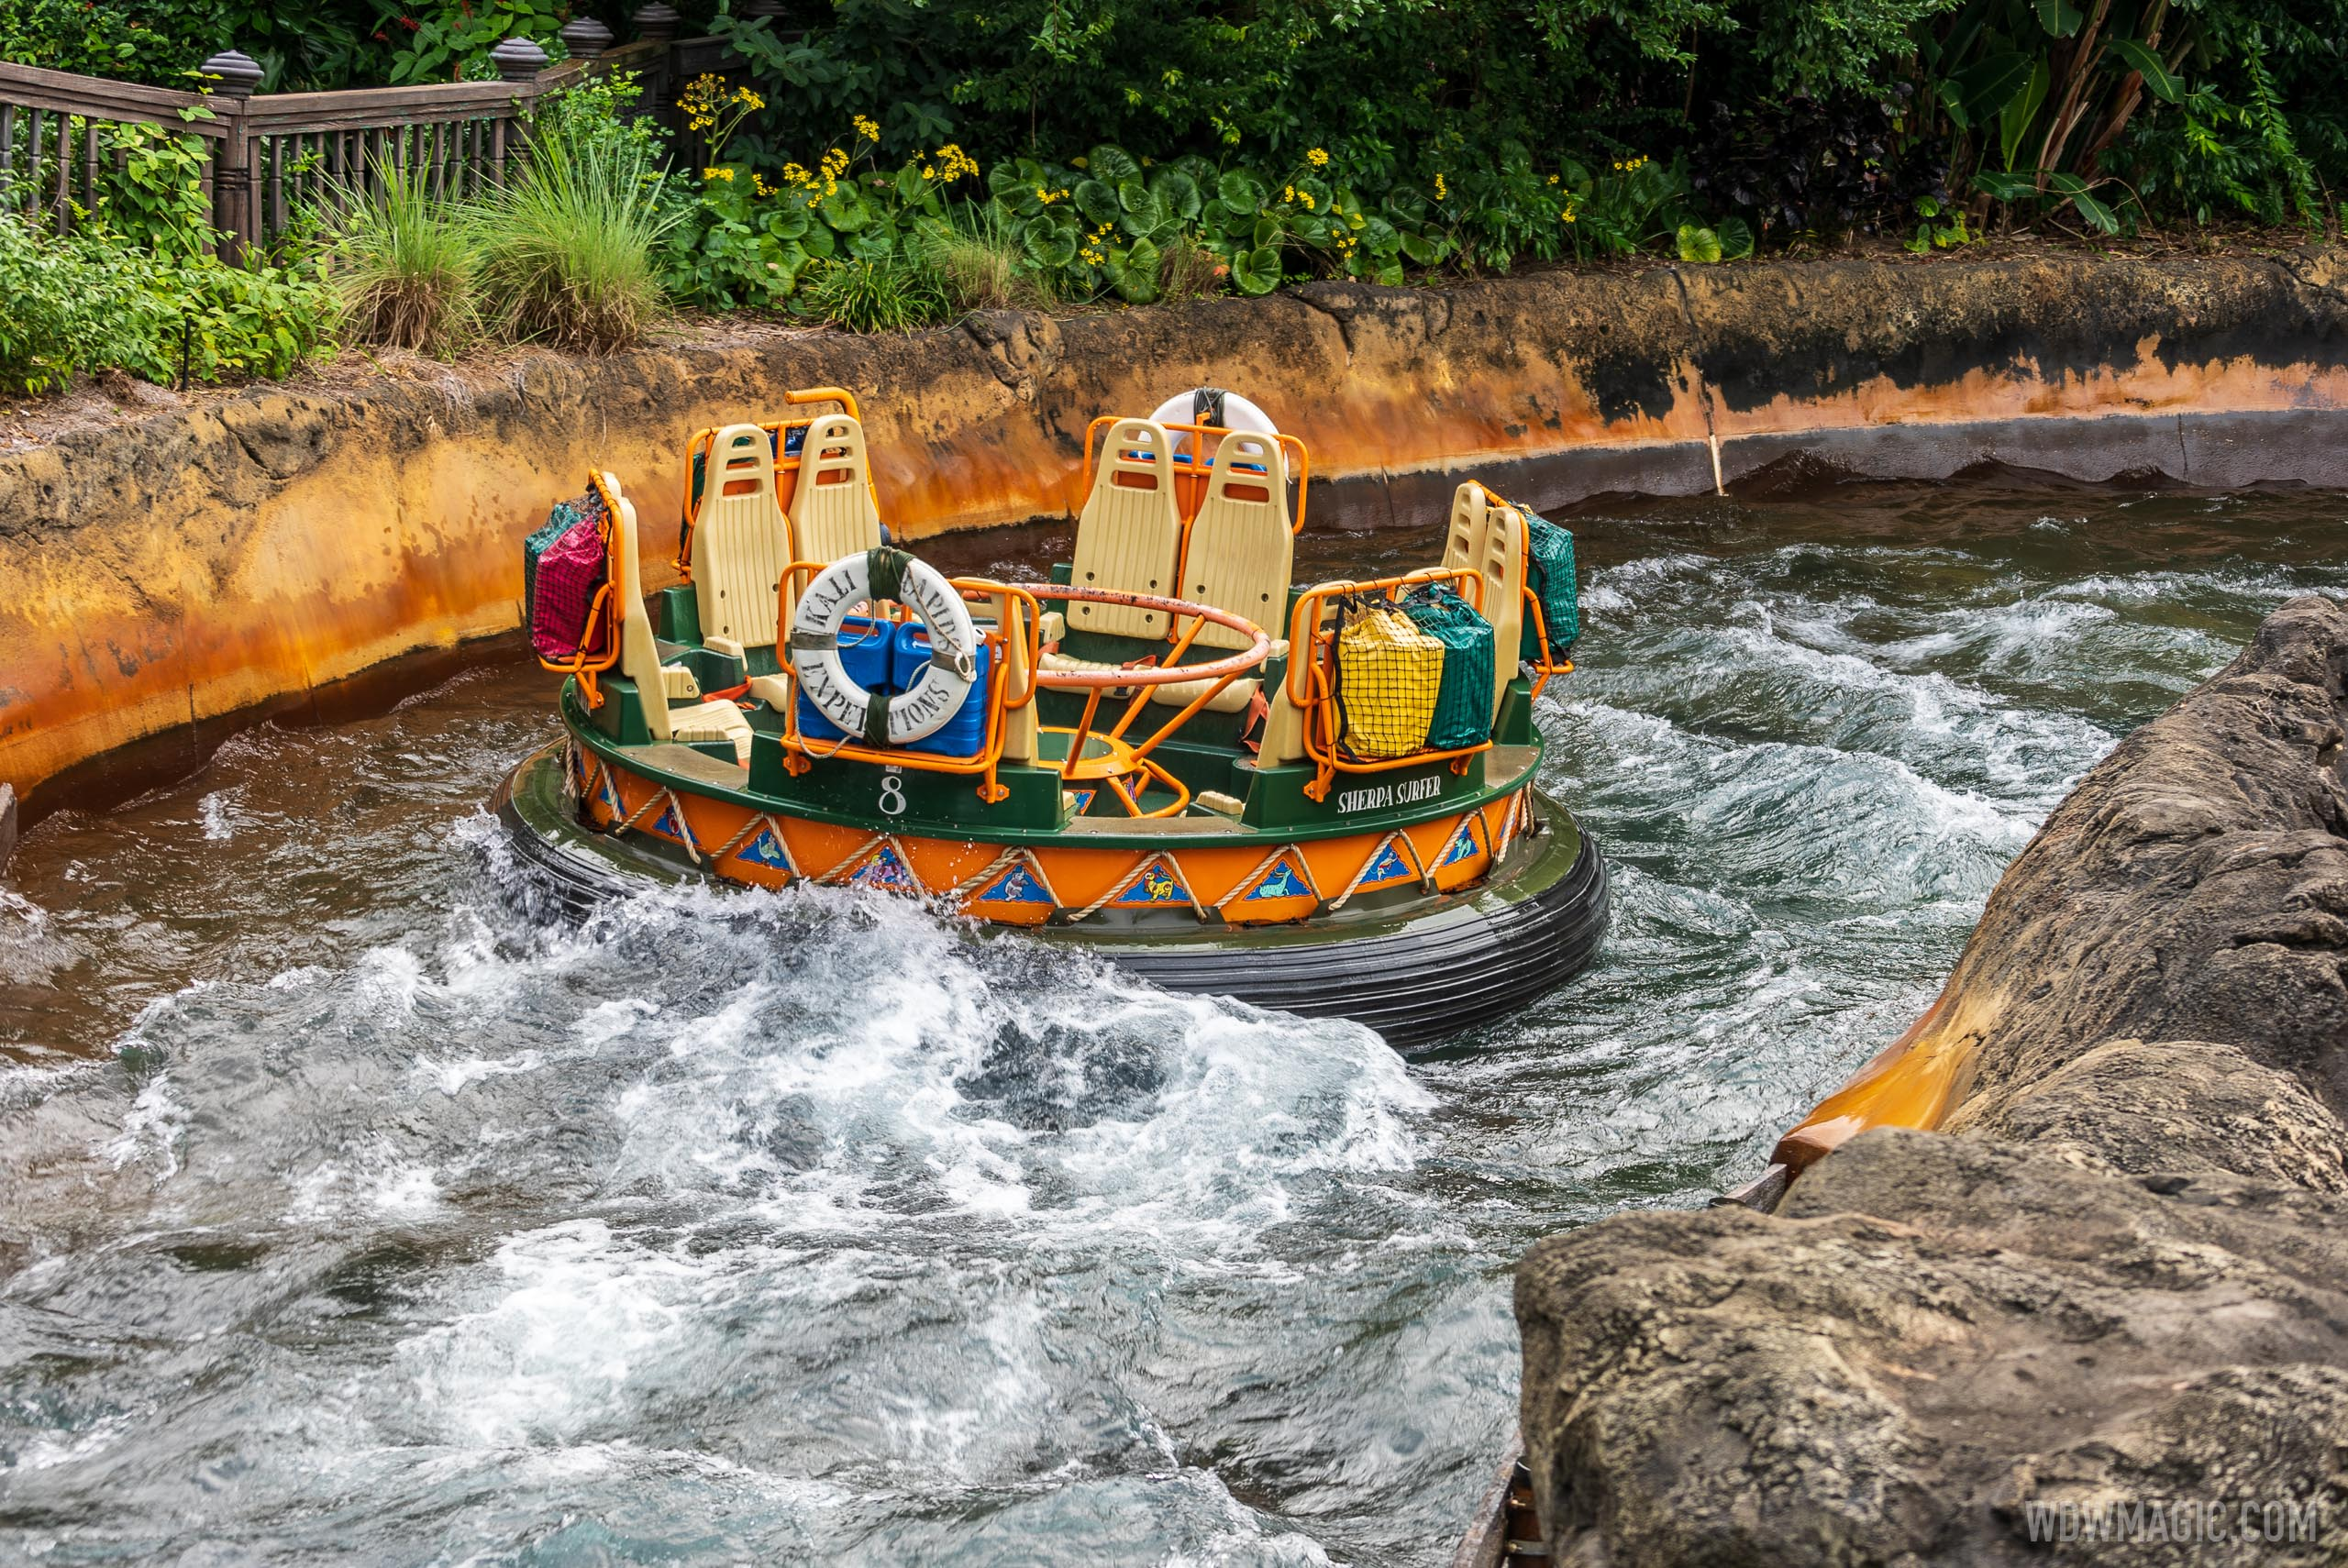 Kali River Rapids to begin delayed openings starting today at Disney's Animal Kingdom